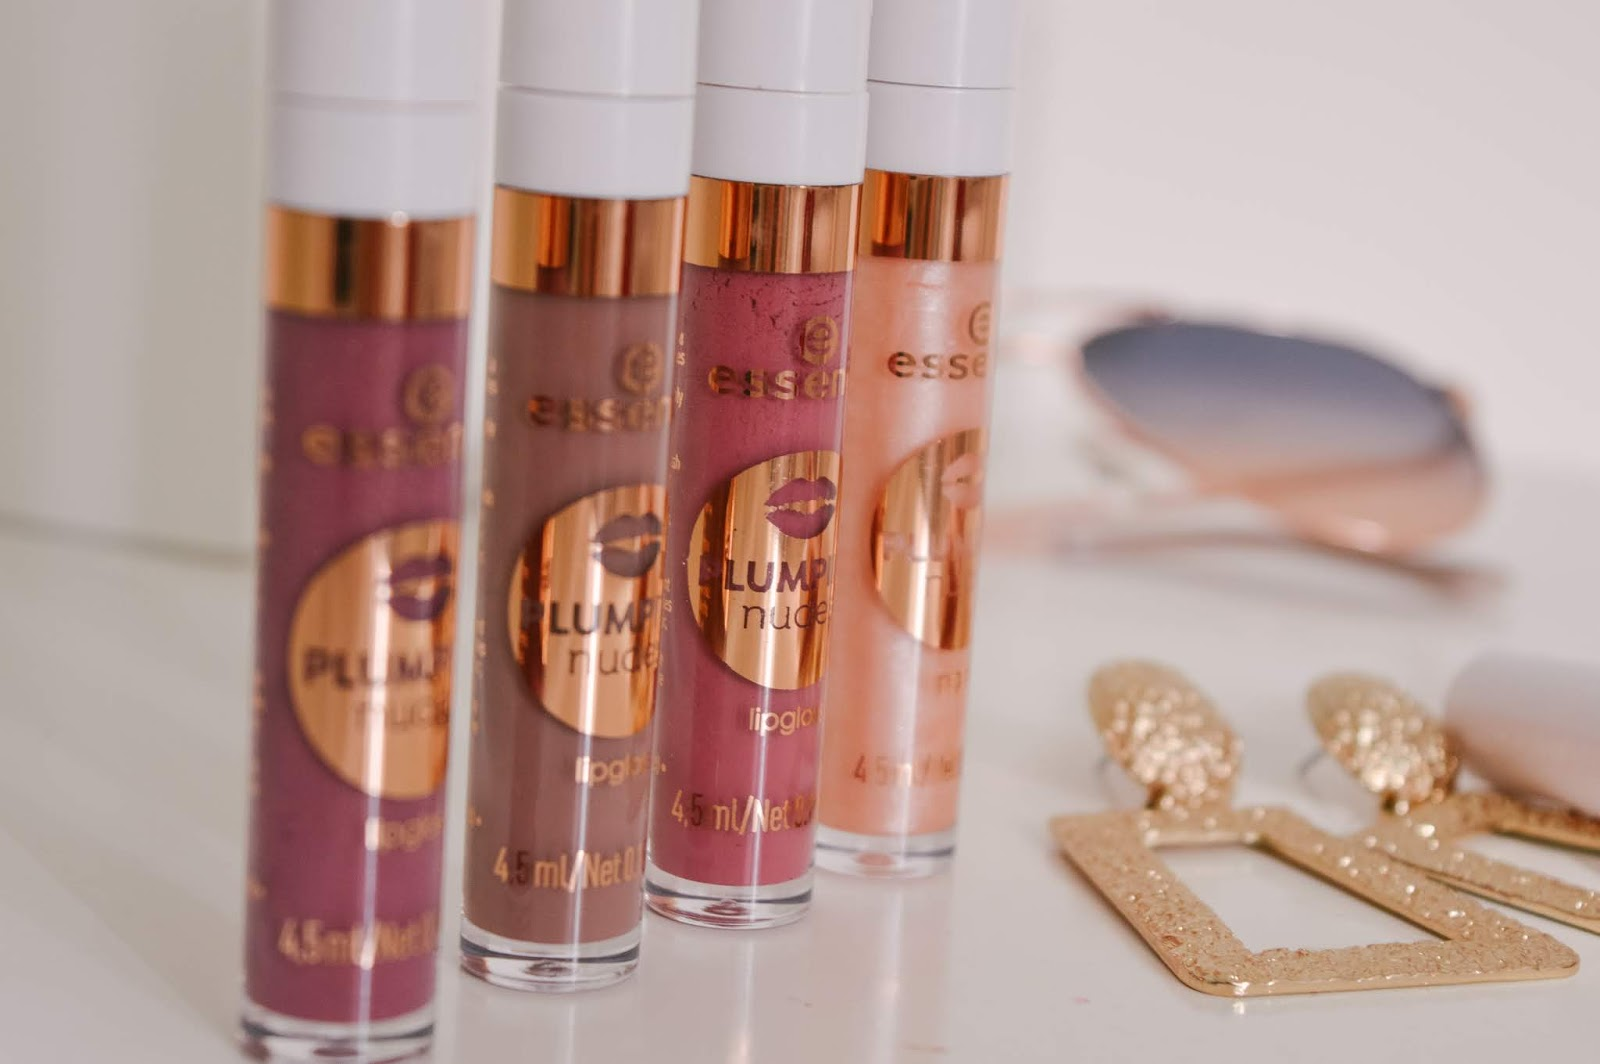 Tips to get fuller lips, Essence Cosmetics Plumping Lipgloss review, Dalry Rose Blog, Beauty Blog